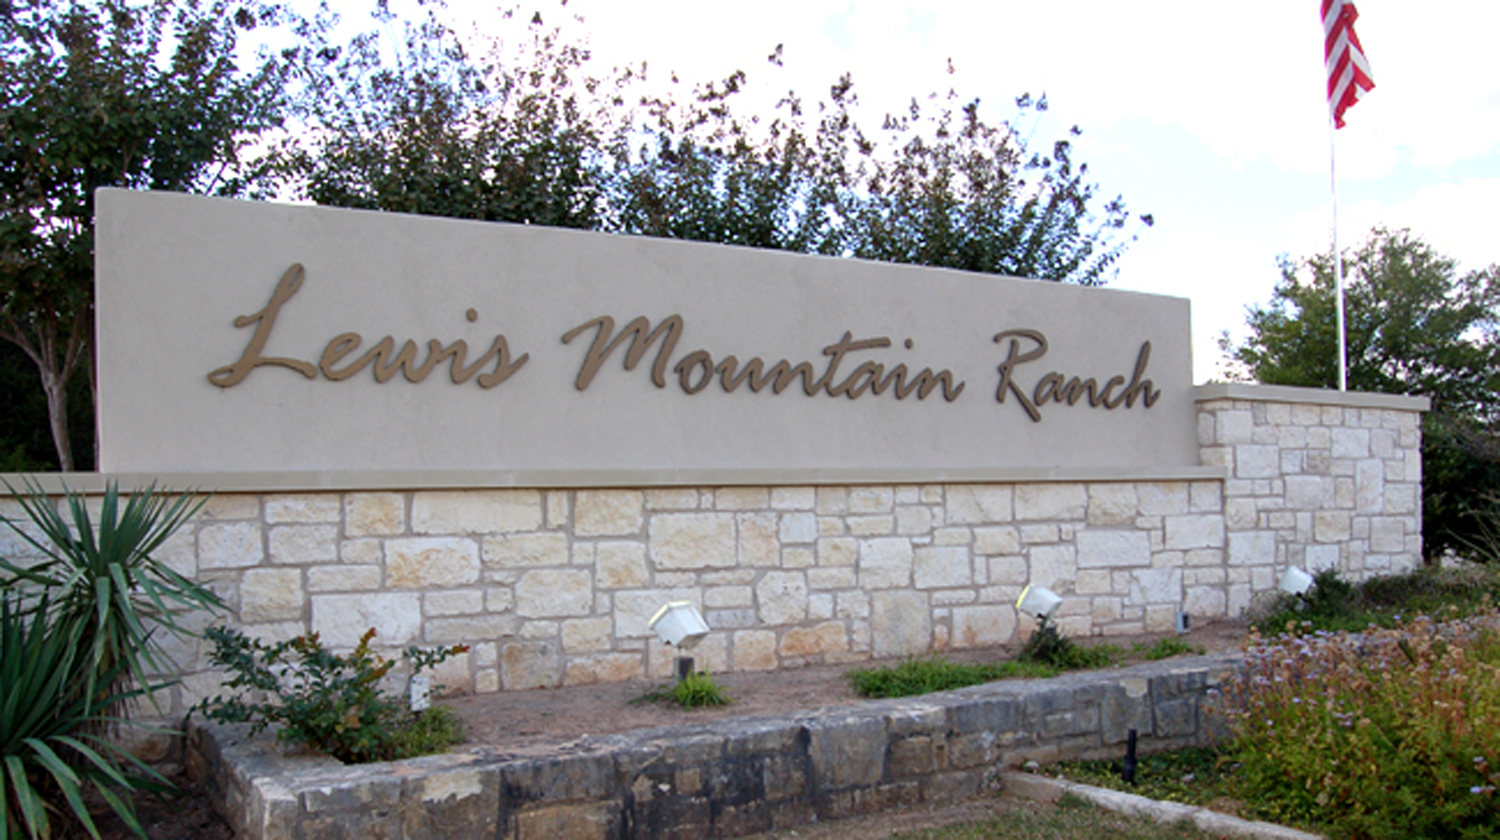 Lewis Mountain laerge